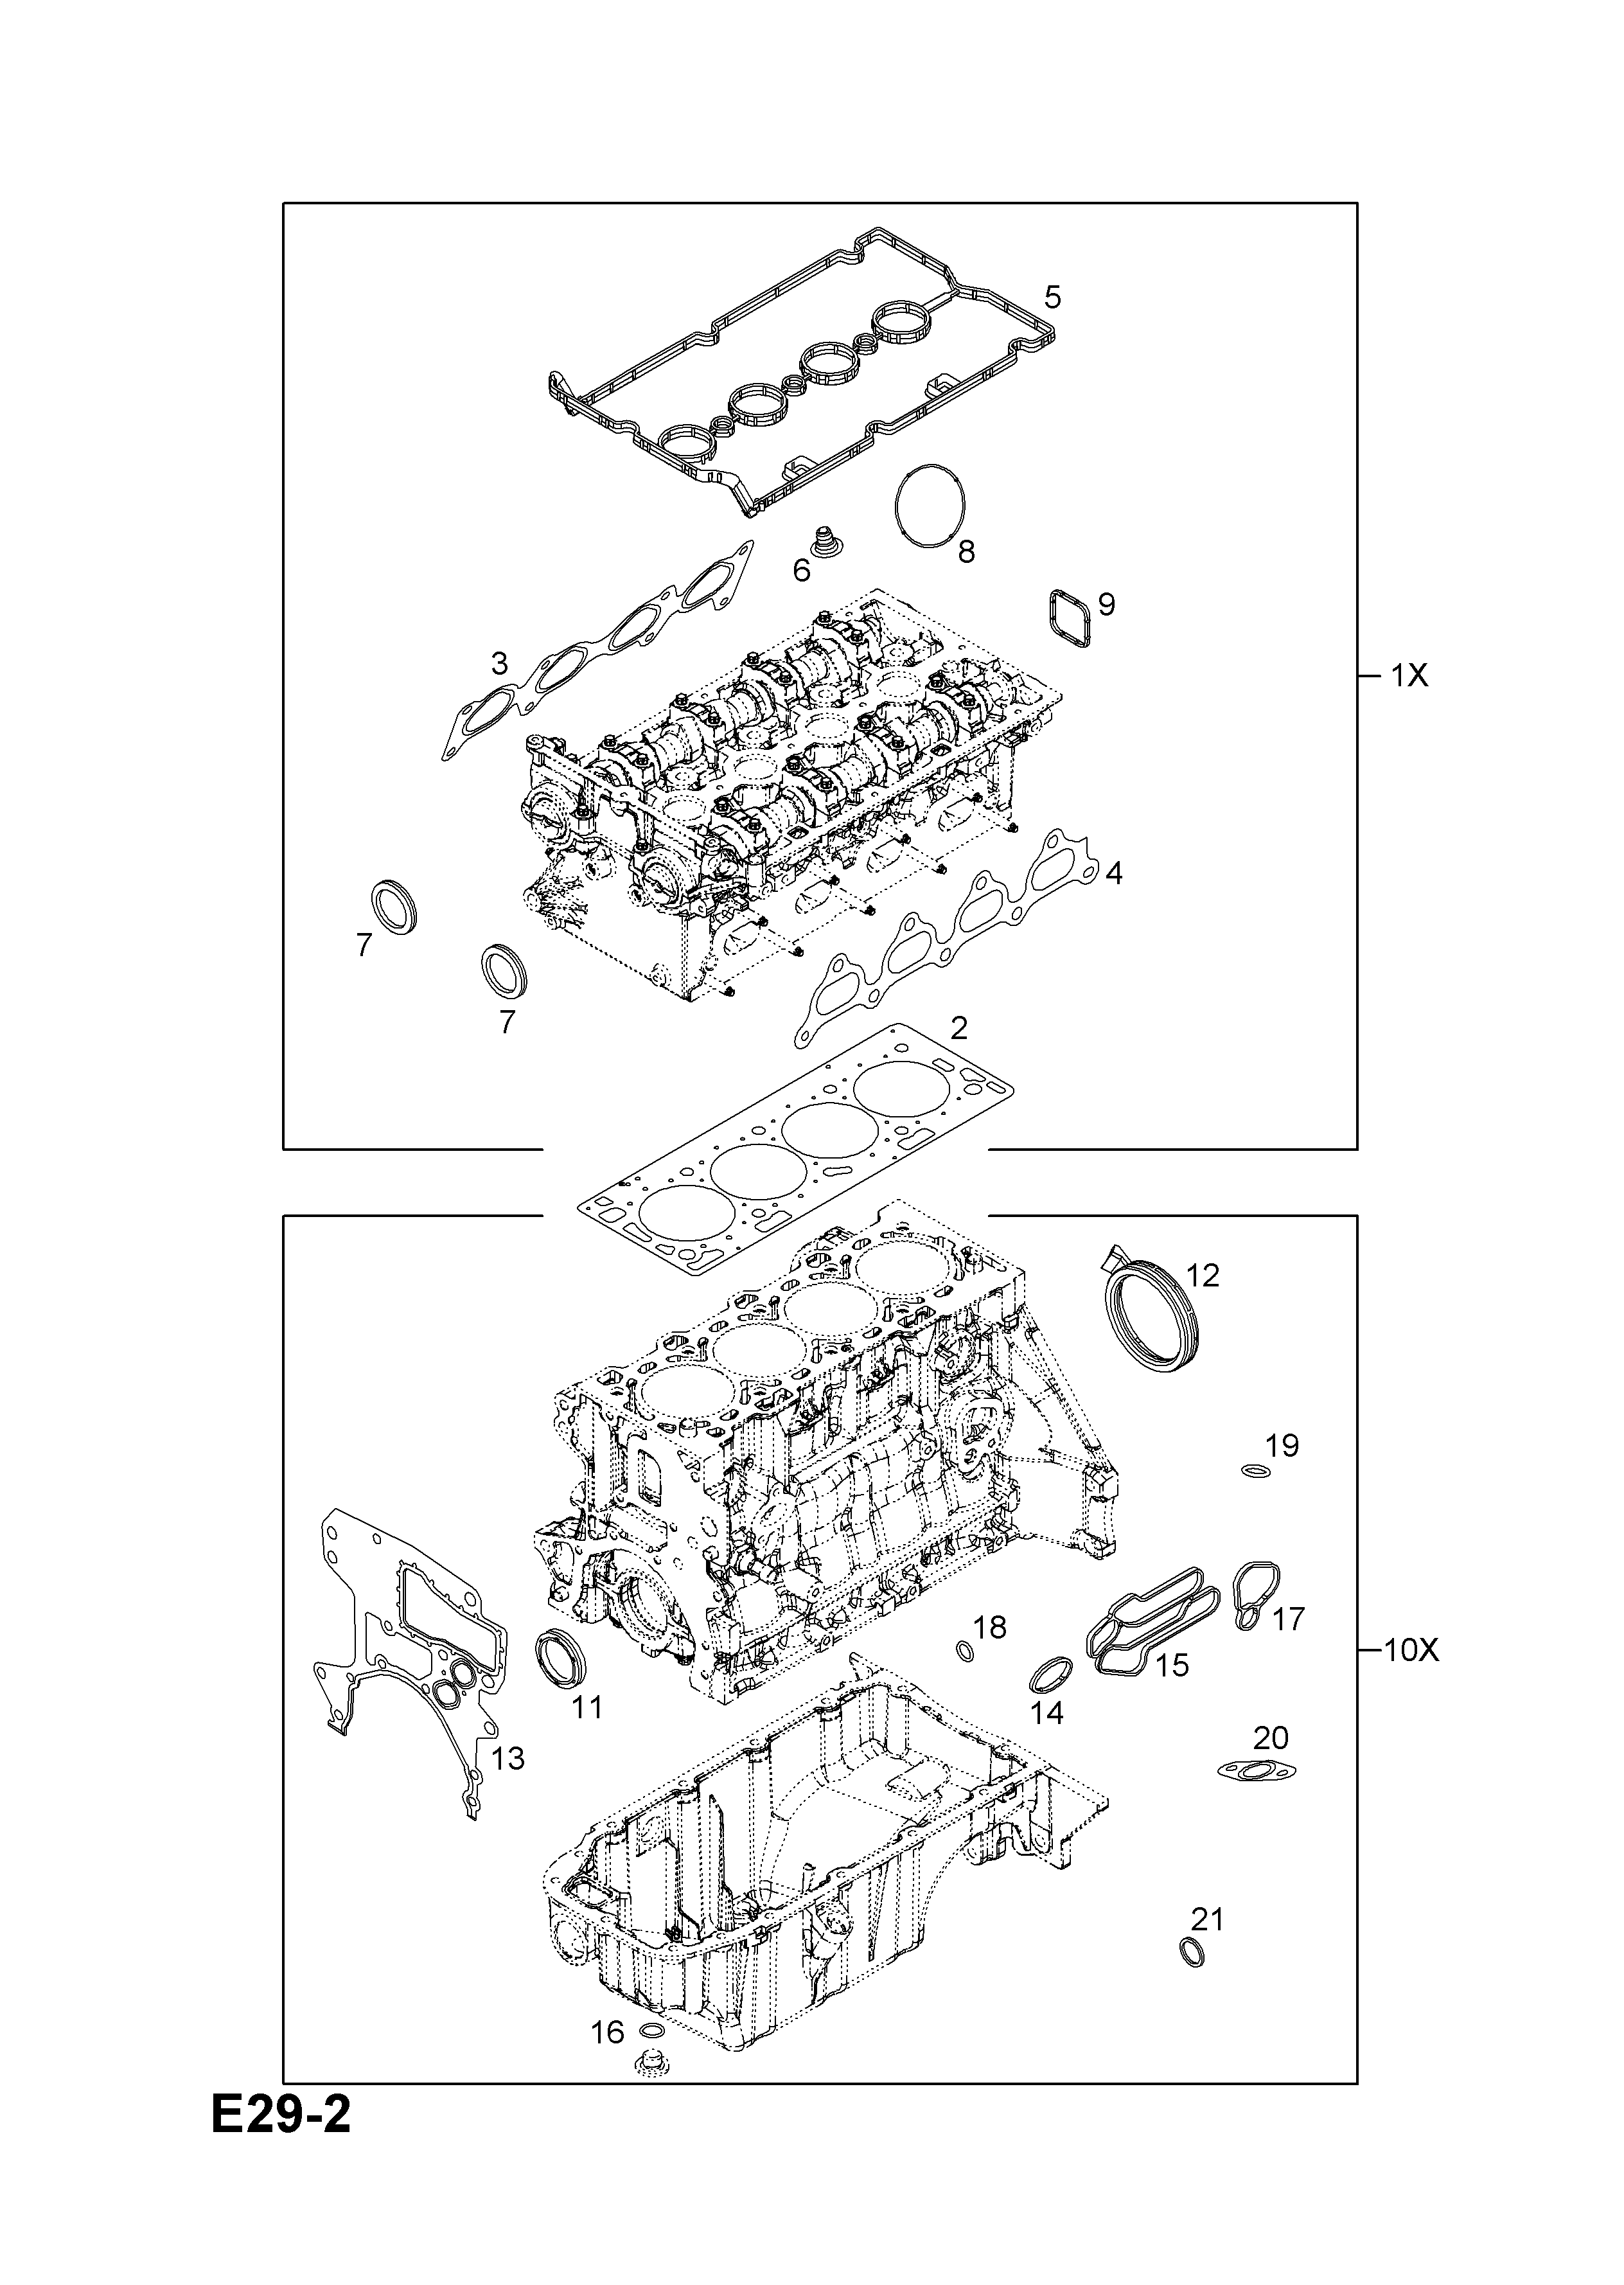 Opel ASTRA-H ( 2004 - ), E ENGINE AND CLUTCH, 4 Z16LET[LLU],A16LET on hemi engine diagram, four-stroke engine diagram, corliss steam engine diagram, inline engine diagram, rotary engine diagram, two-stroke engine diagram, wankel engine diagram, single cylinder engine diagram, aircraft engine diagram, radial engine diagram, w8 engine diagram, w16 engine diagram, diesel engine diagram, w12 engine diagram, pushrod engine diagram, v6 engine diagram, v12 engine diagram,